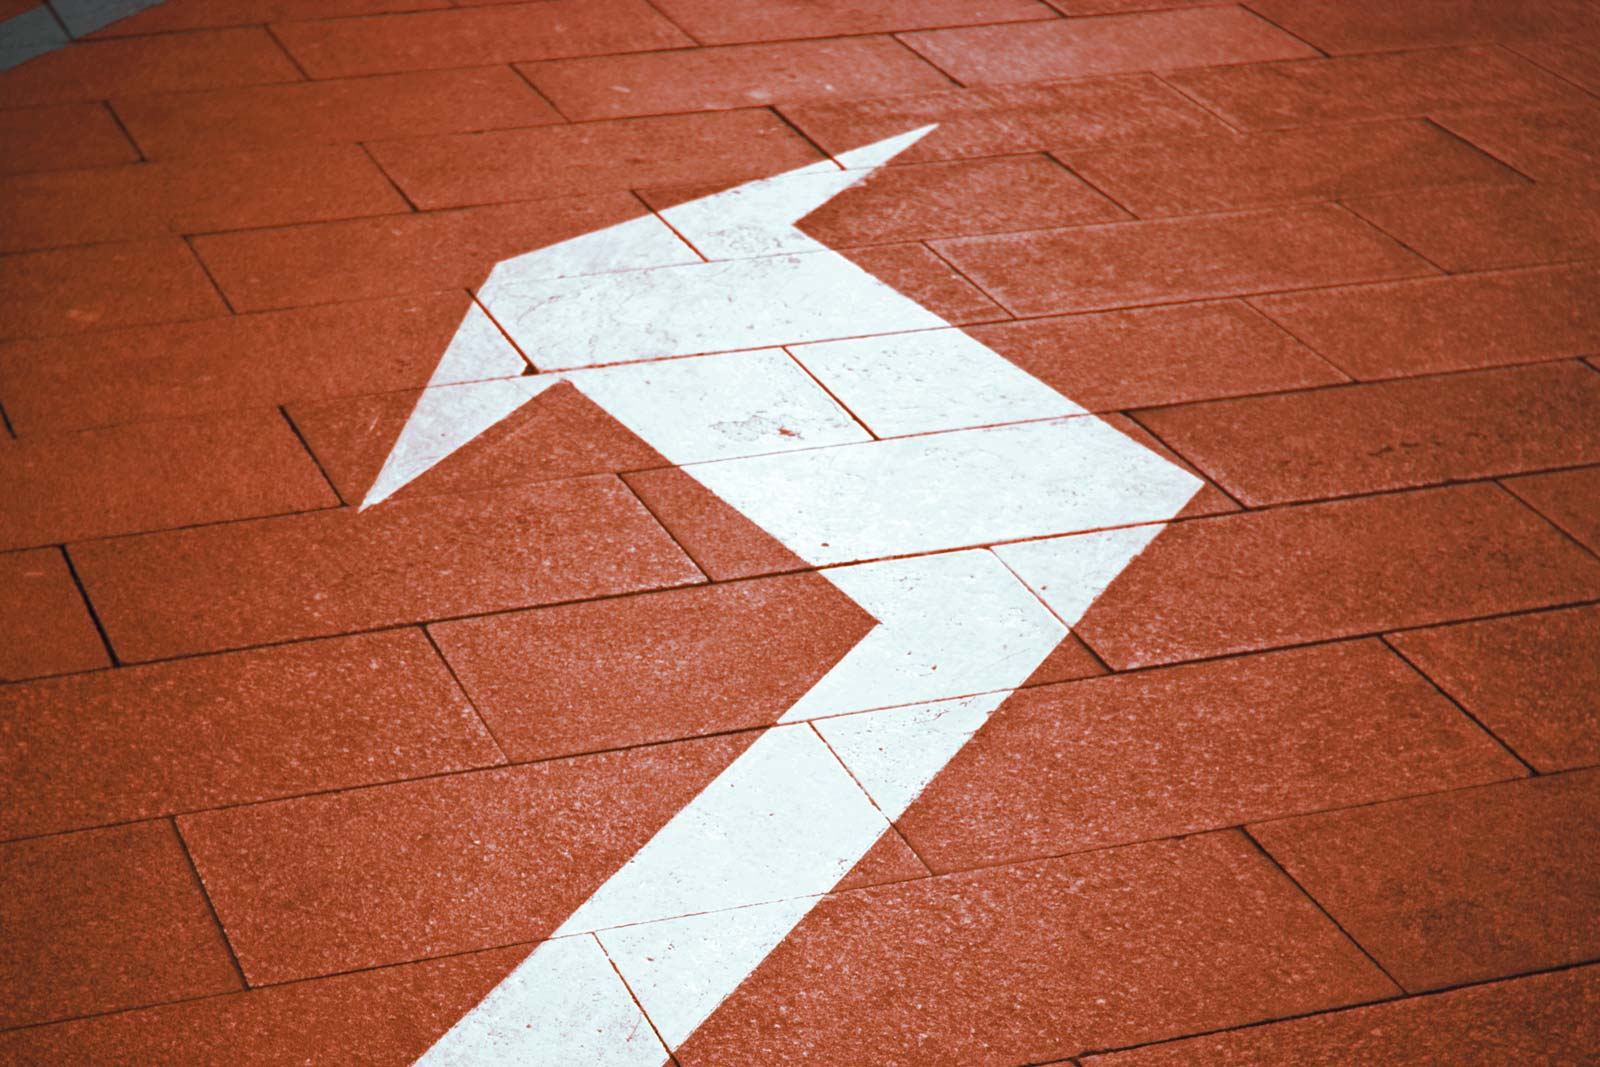 Large arrow on floor indicating a change in direction